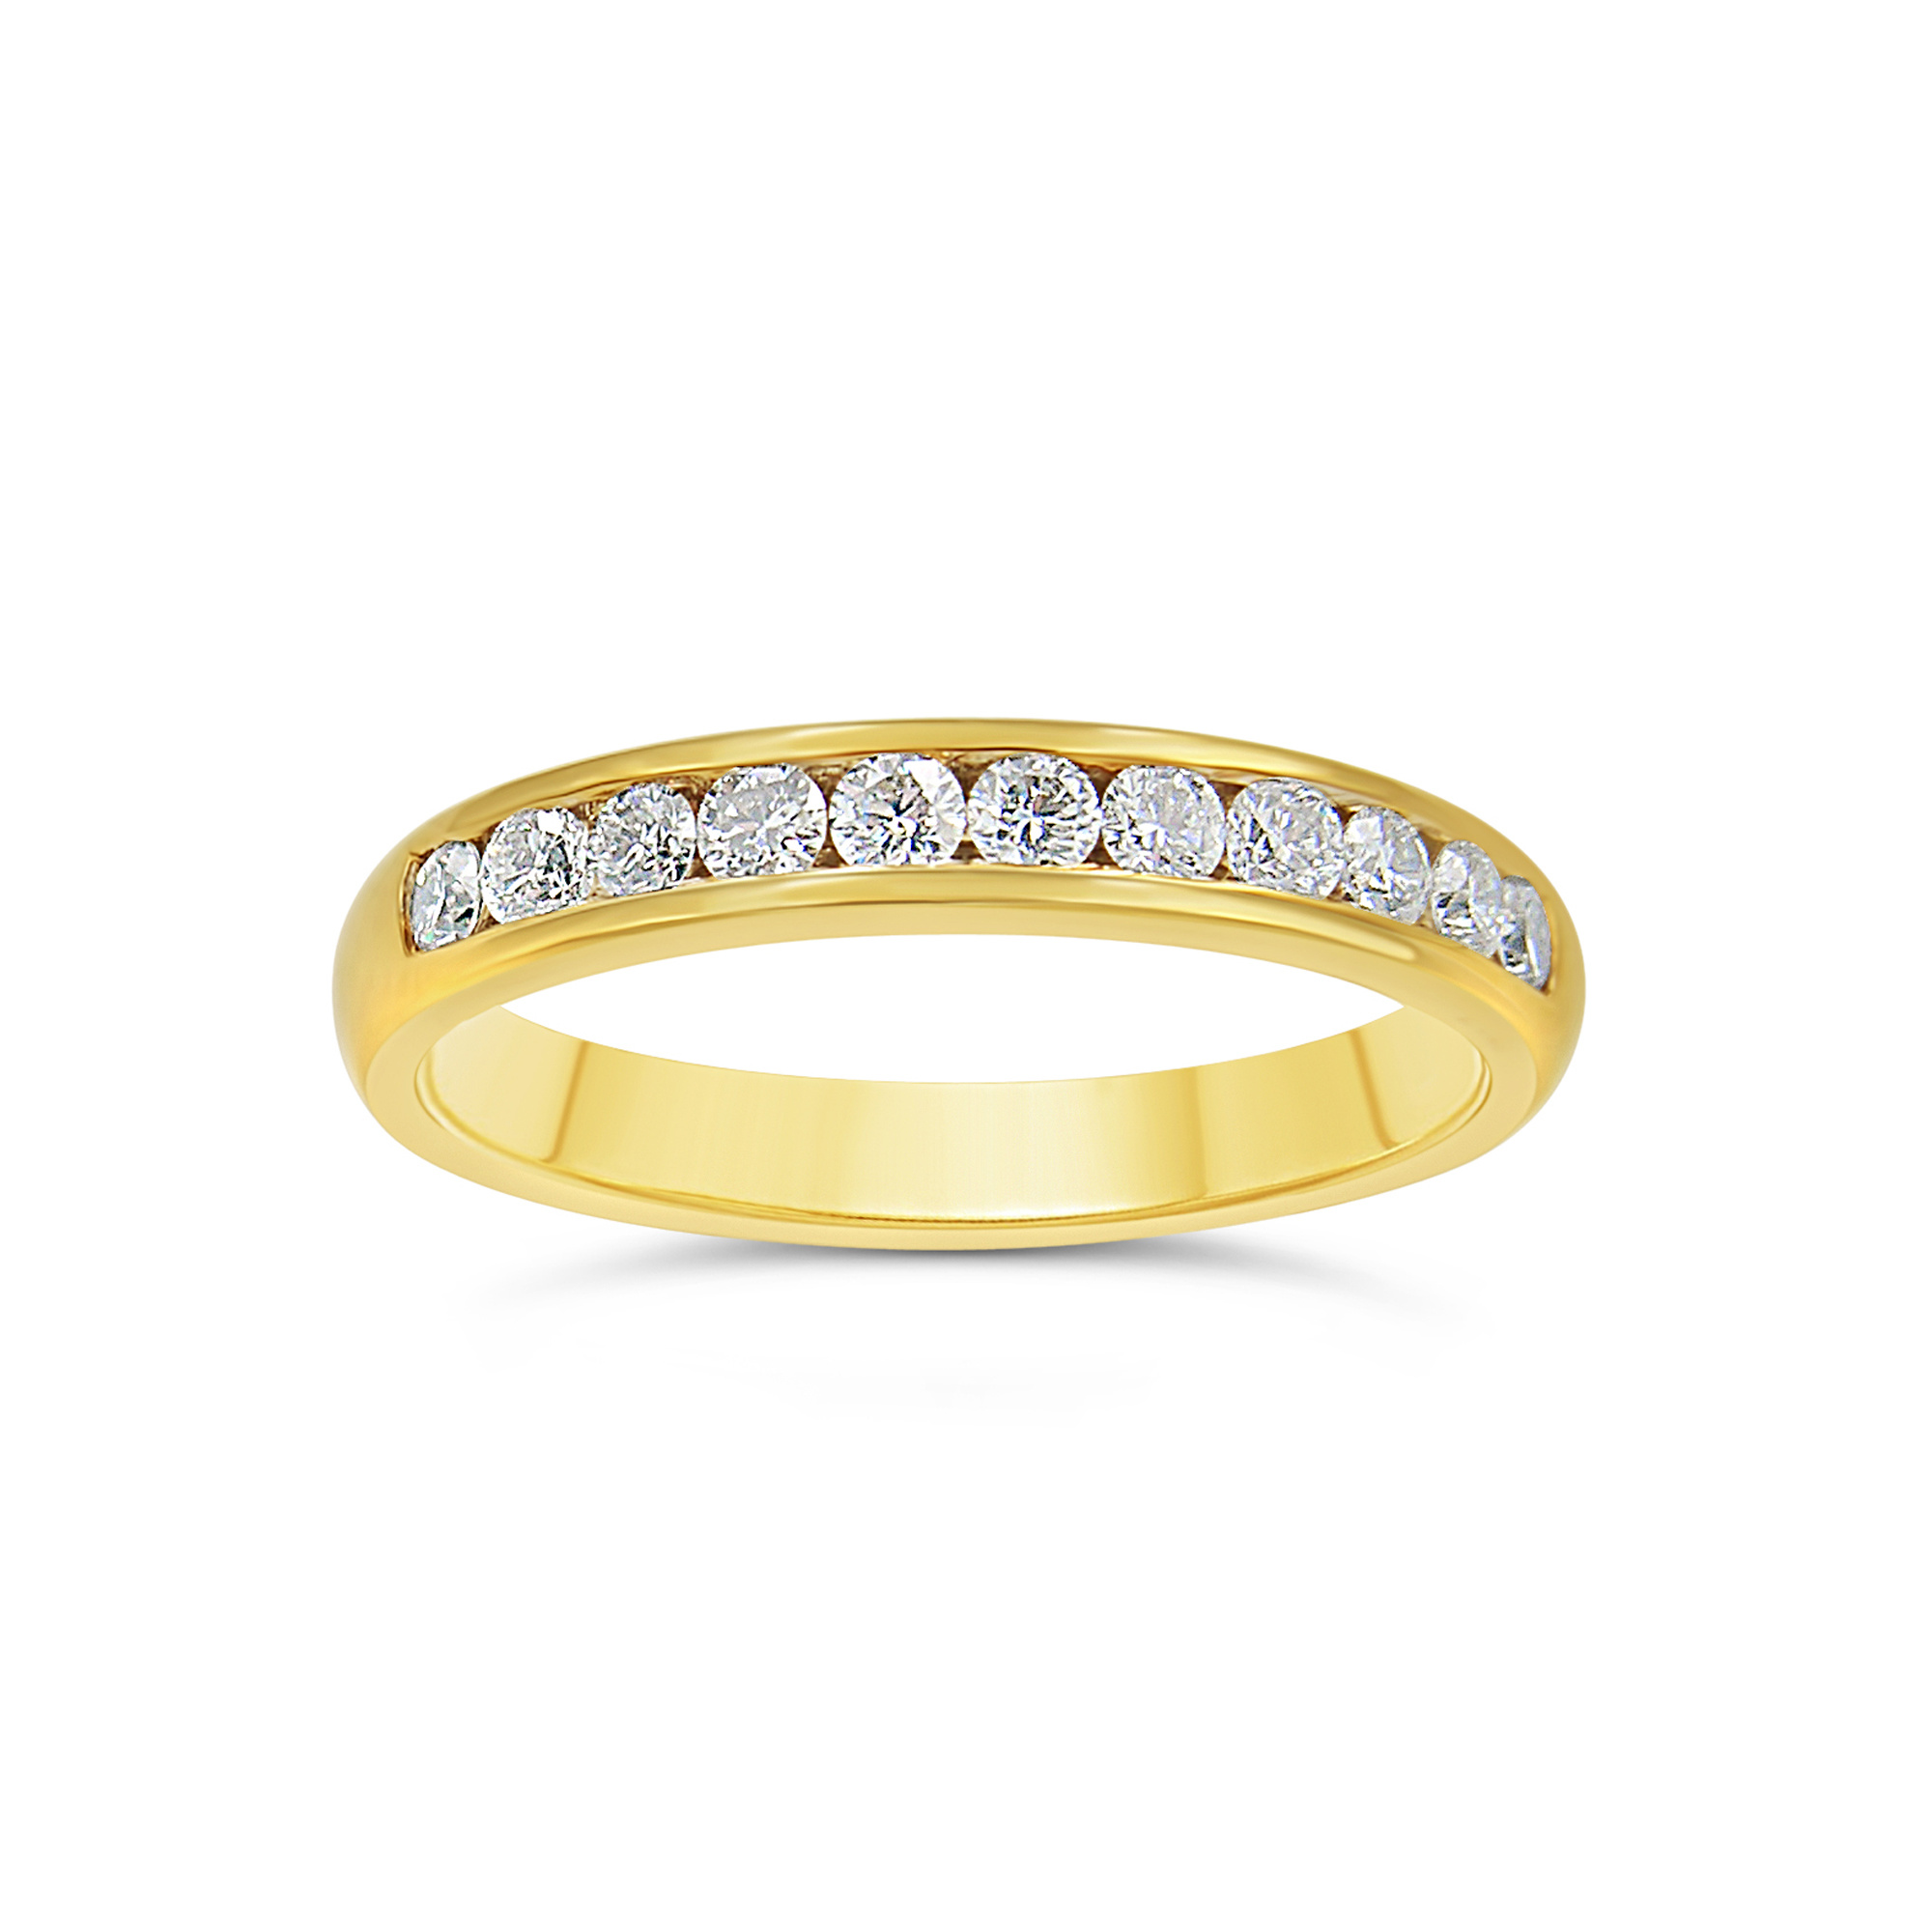 18k yellow gold ring with 0.52 ct diamonds